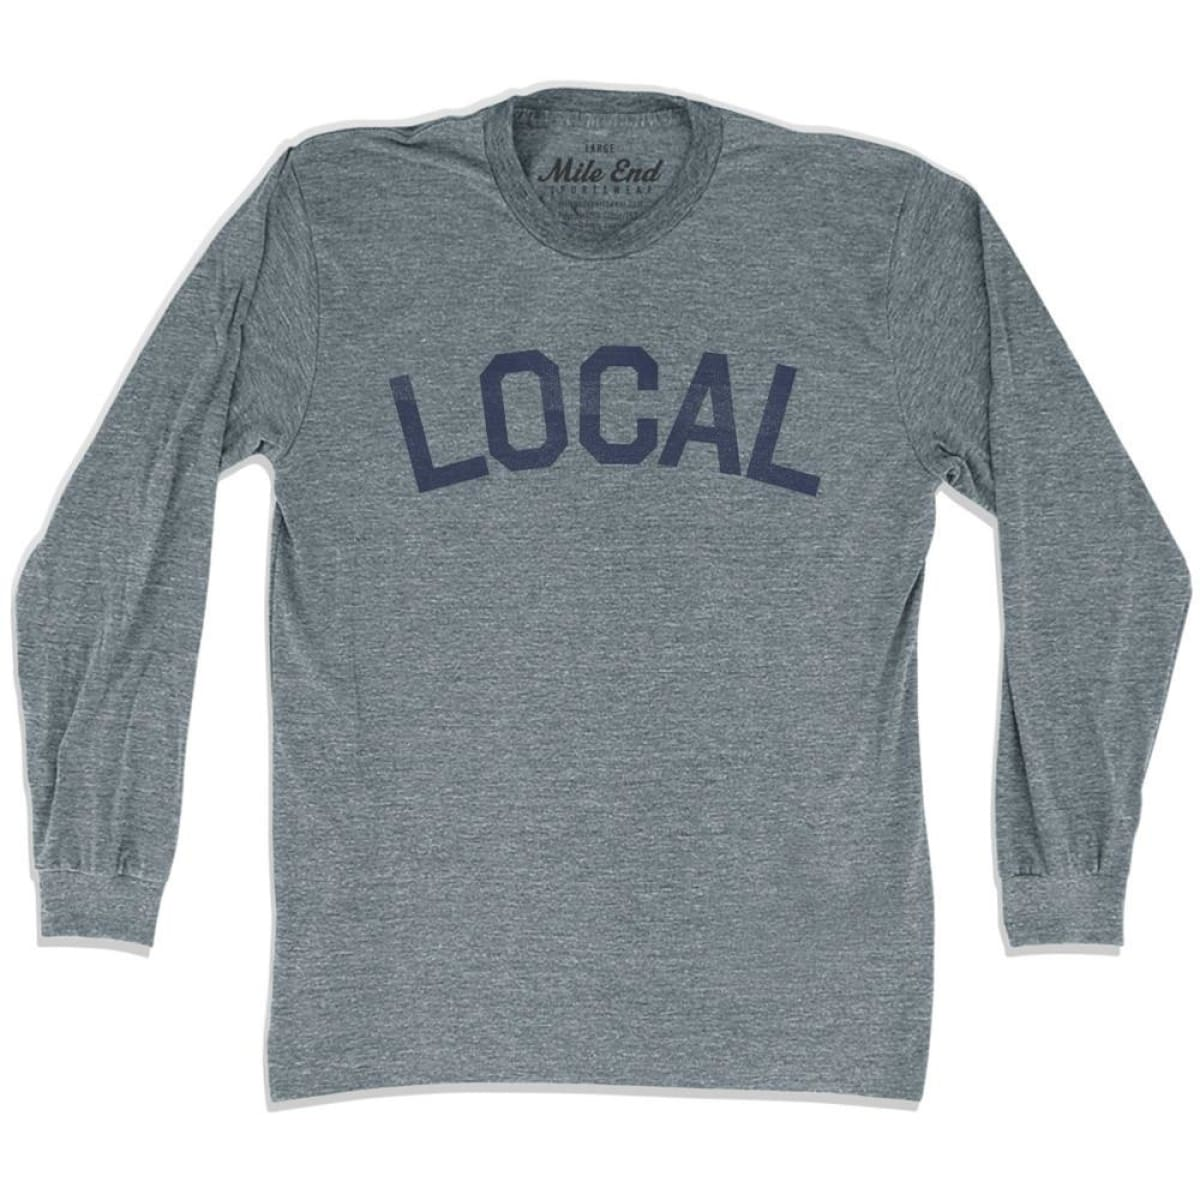 Local City Vintage Long Sleeve T-shirt - Athletic Grey / Adult X-Small - Mile End City